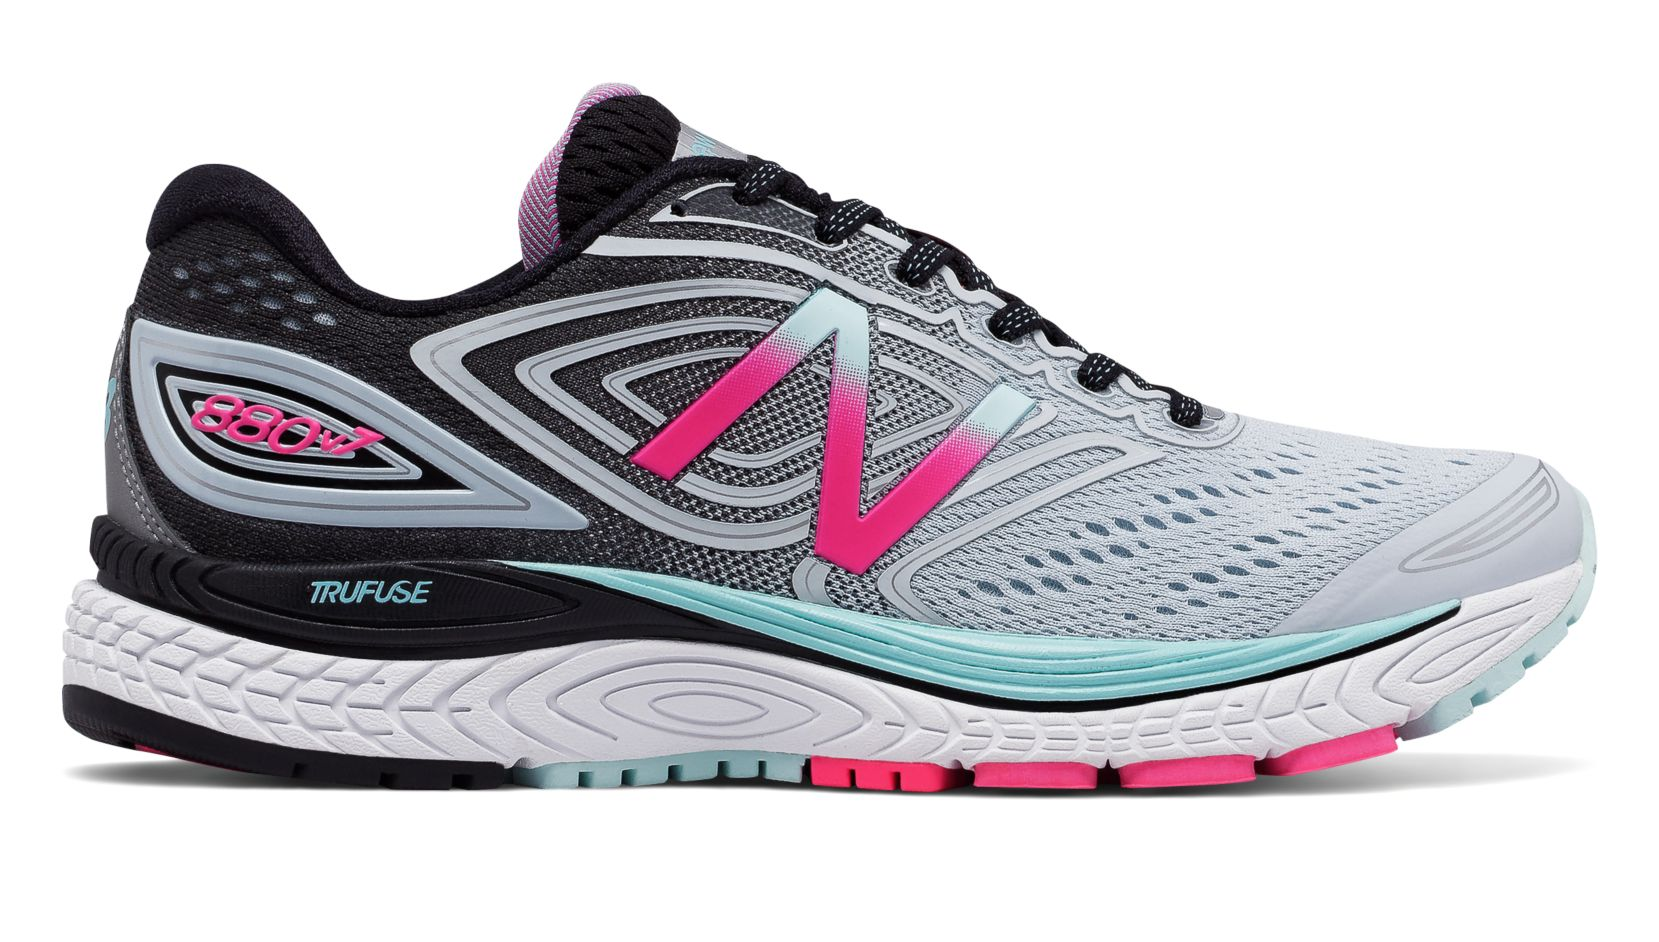 NB 880v7, Light Porcelain Blue with Black & Alpha Pink